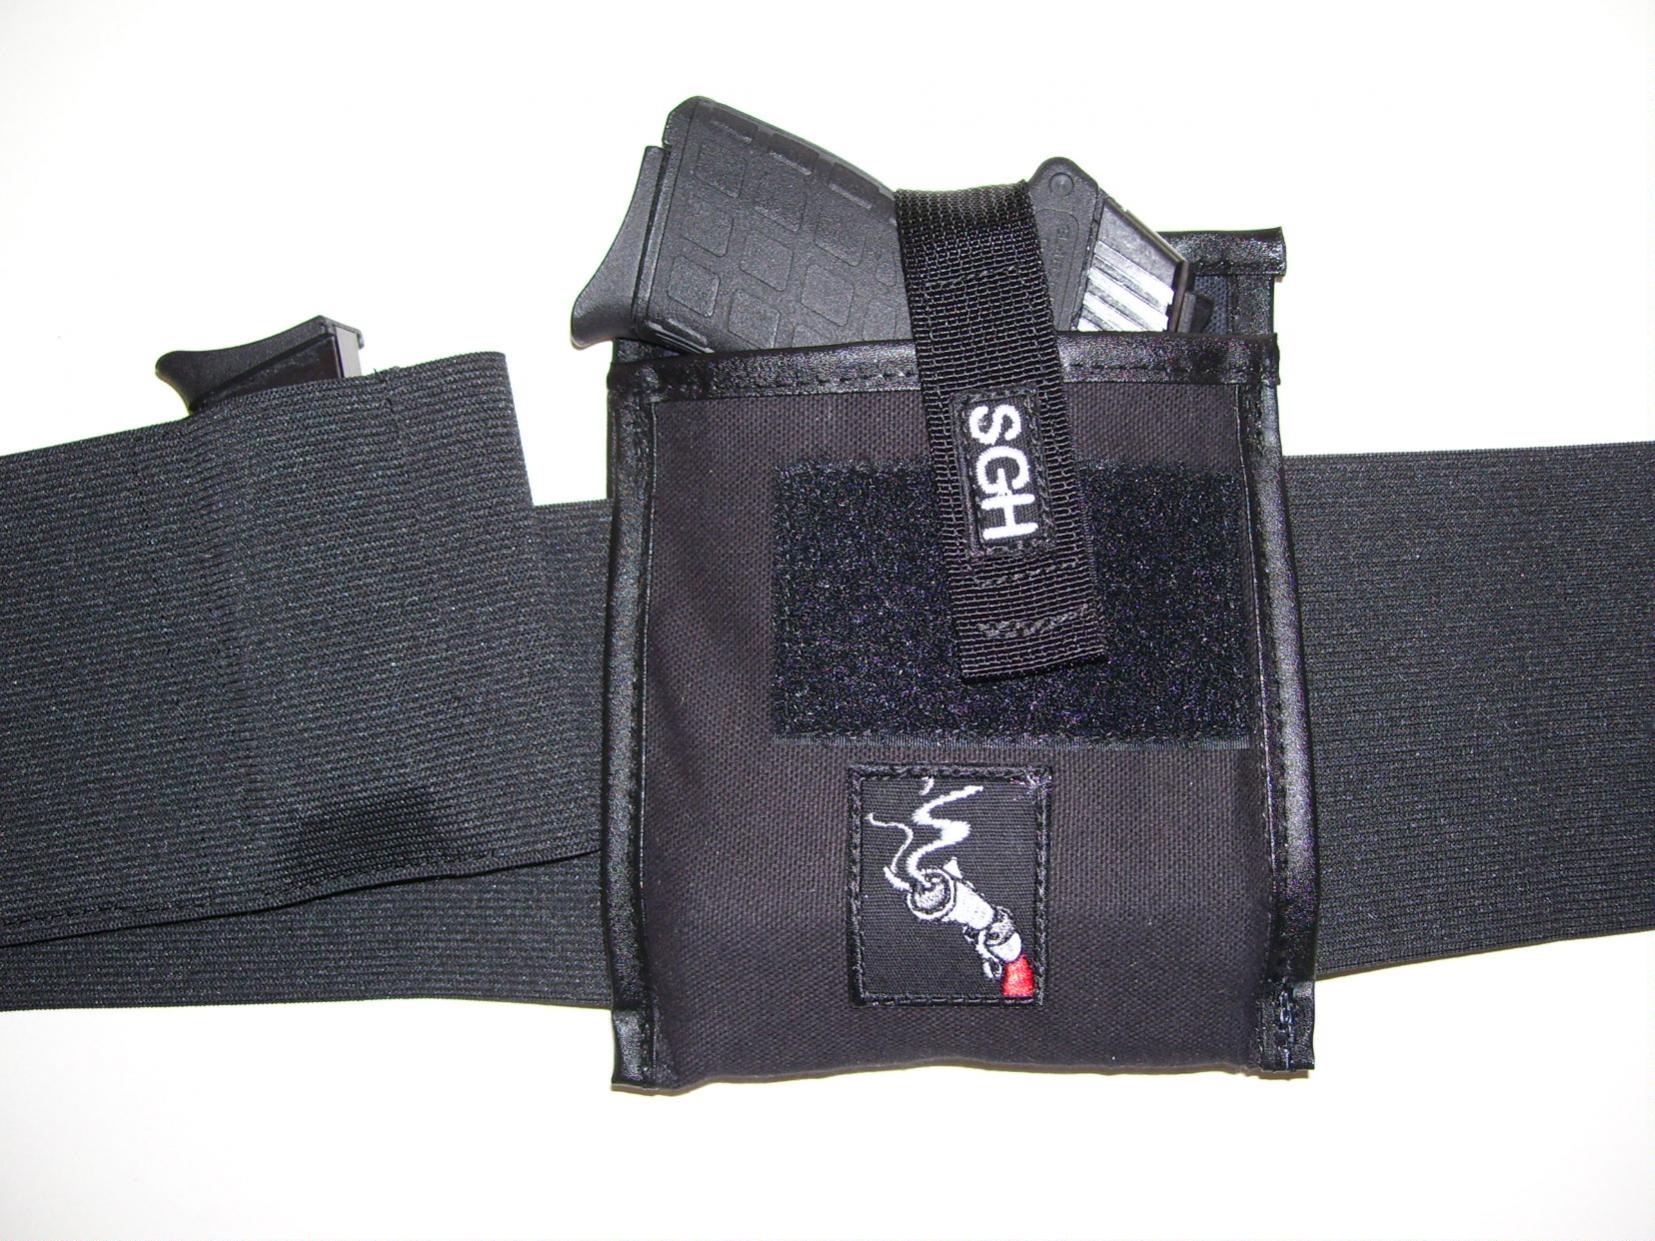 Bullet resistant concealed carry holsters-bellyband-2-9mm-mag.jpg